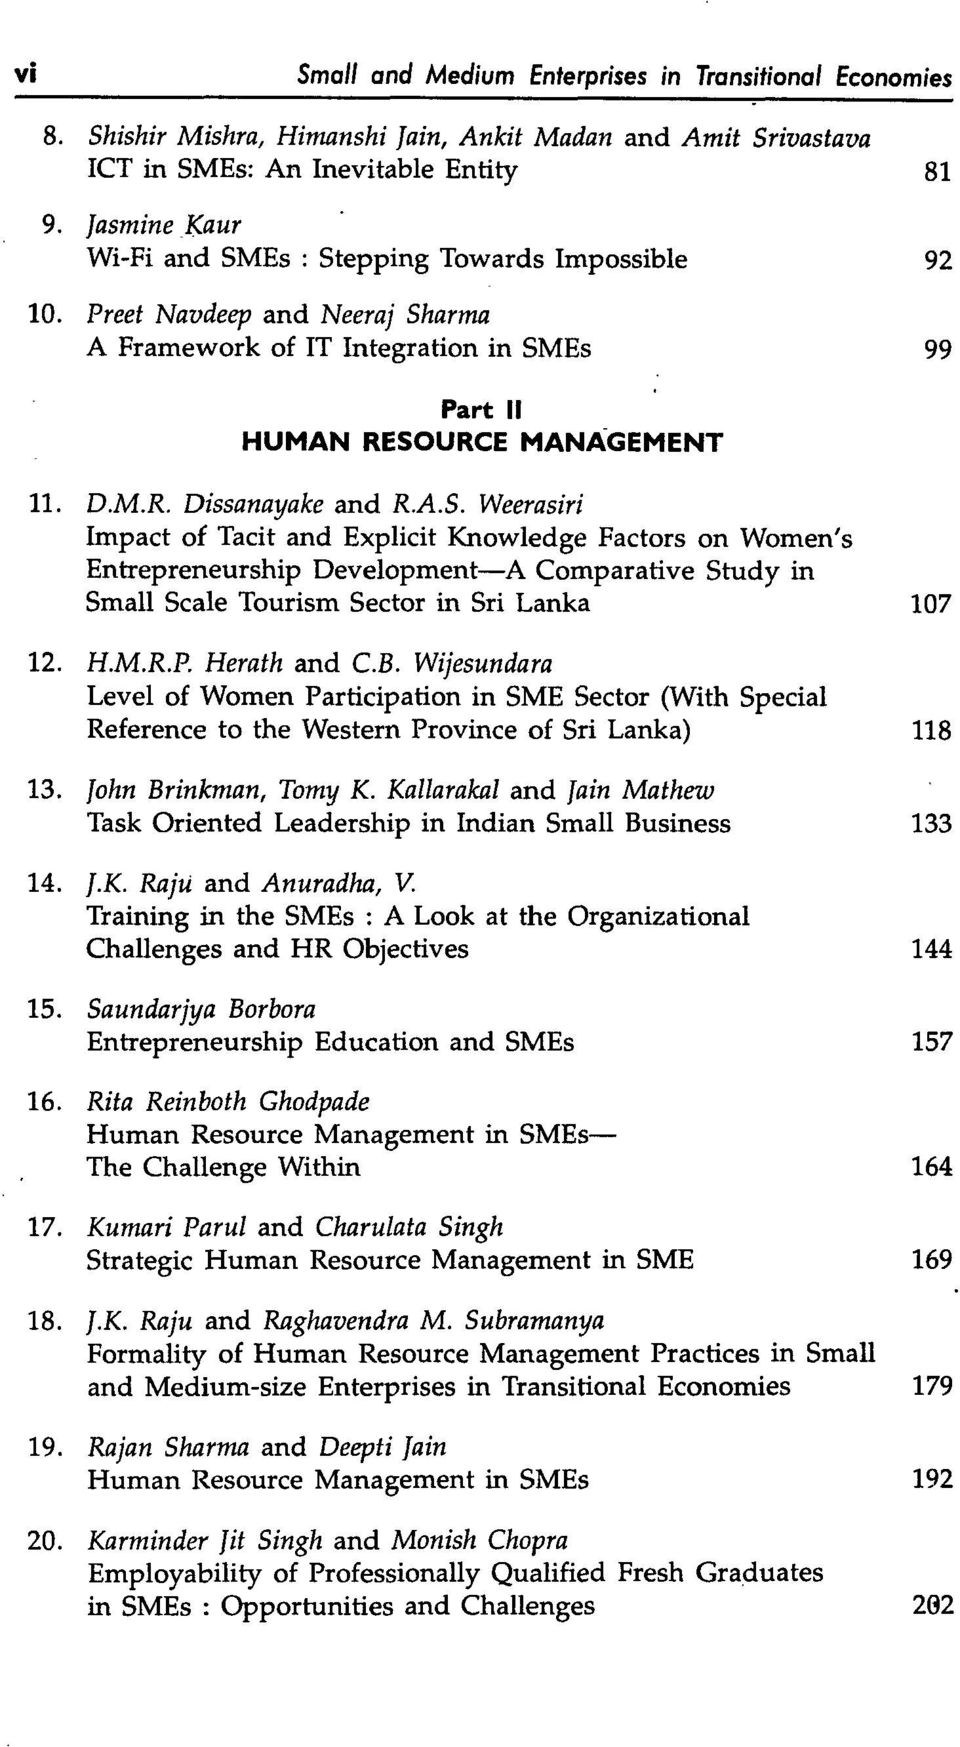 A.S. Weerasiri Impact of Tacit and Explicit Knowledge Factors on Women's Entrepreneurship Development A Comparative Study in Small Scale Tourism Sector in Sri Lanka 107 12. H.M.R.P. Herath and C.B.